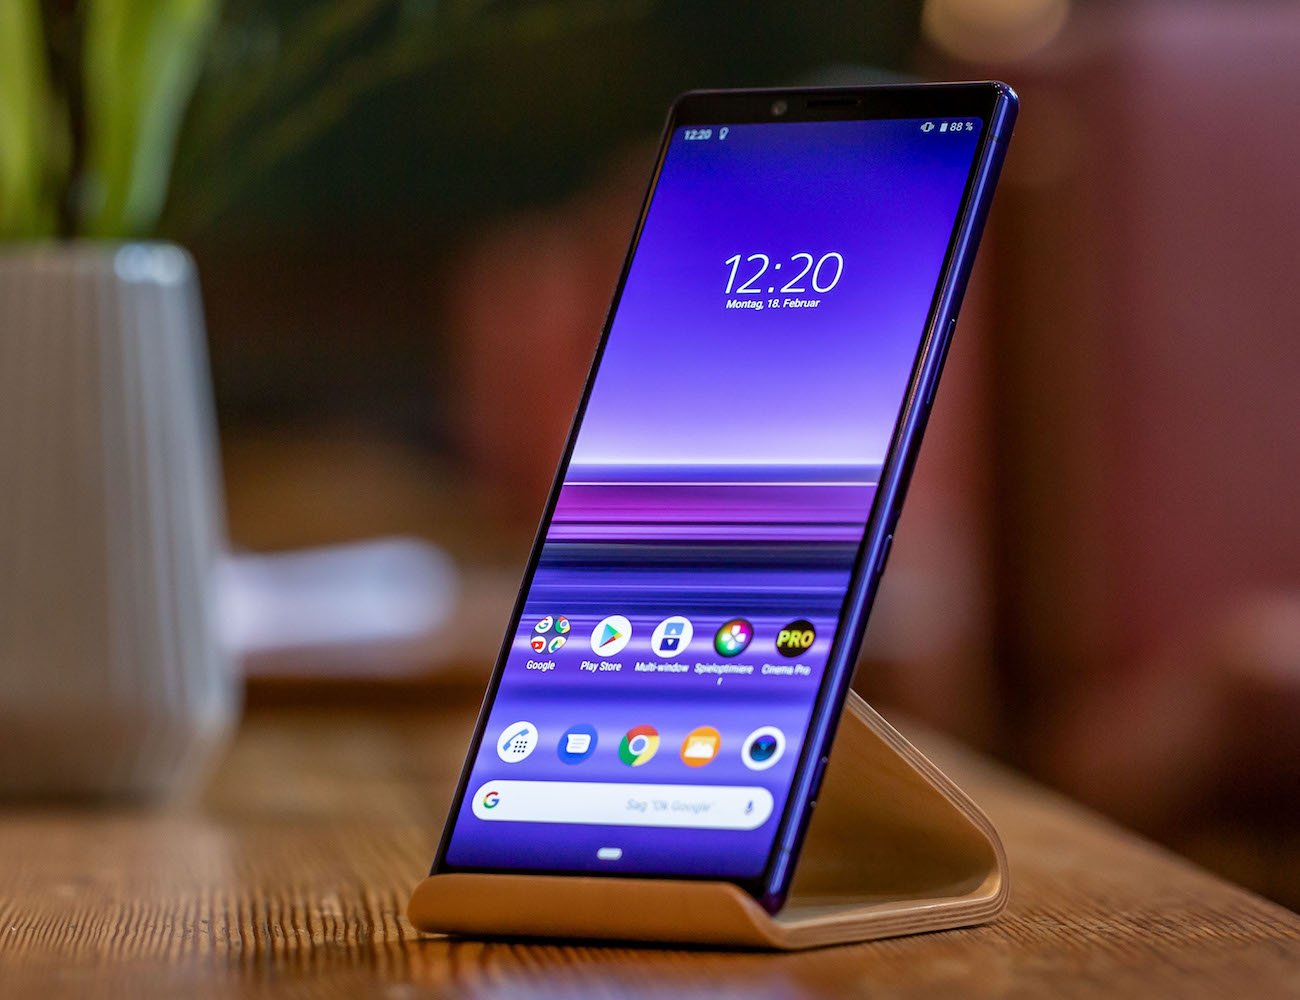 Sony Xperia 1 4K OLED Smartphone was created for creators